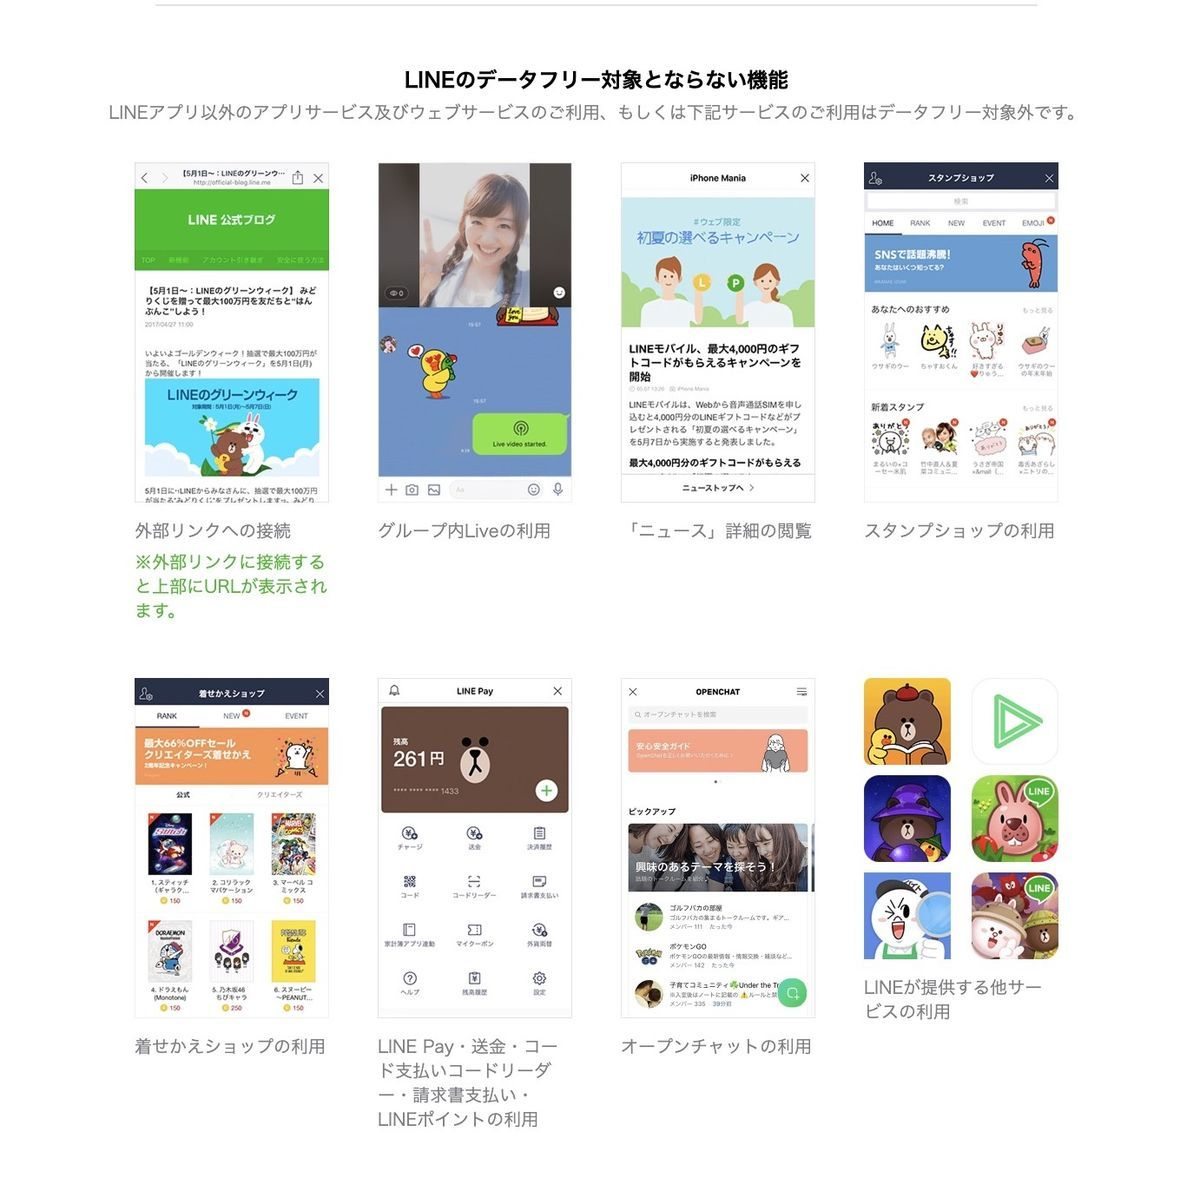 Count free exception usages of LINE mobile